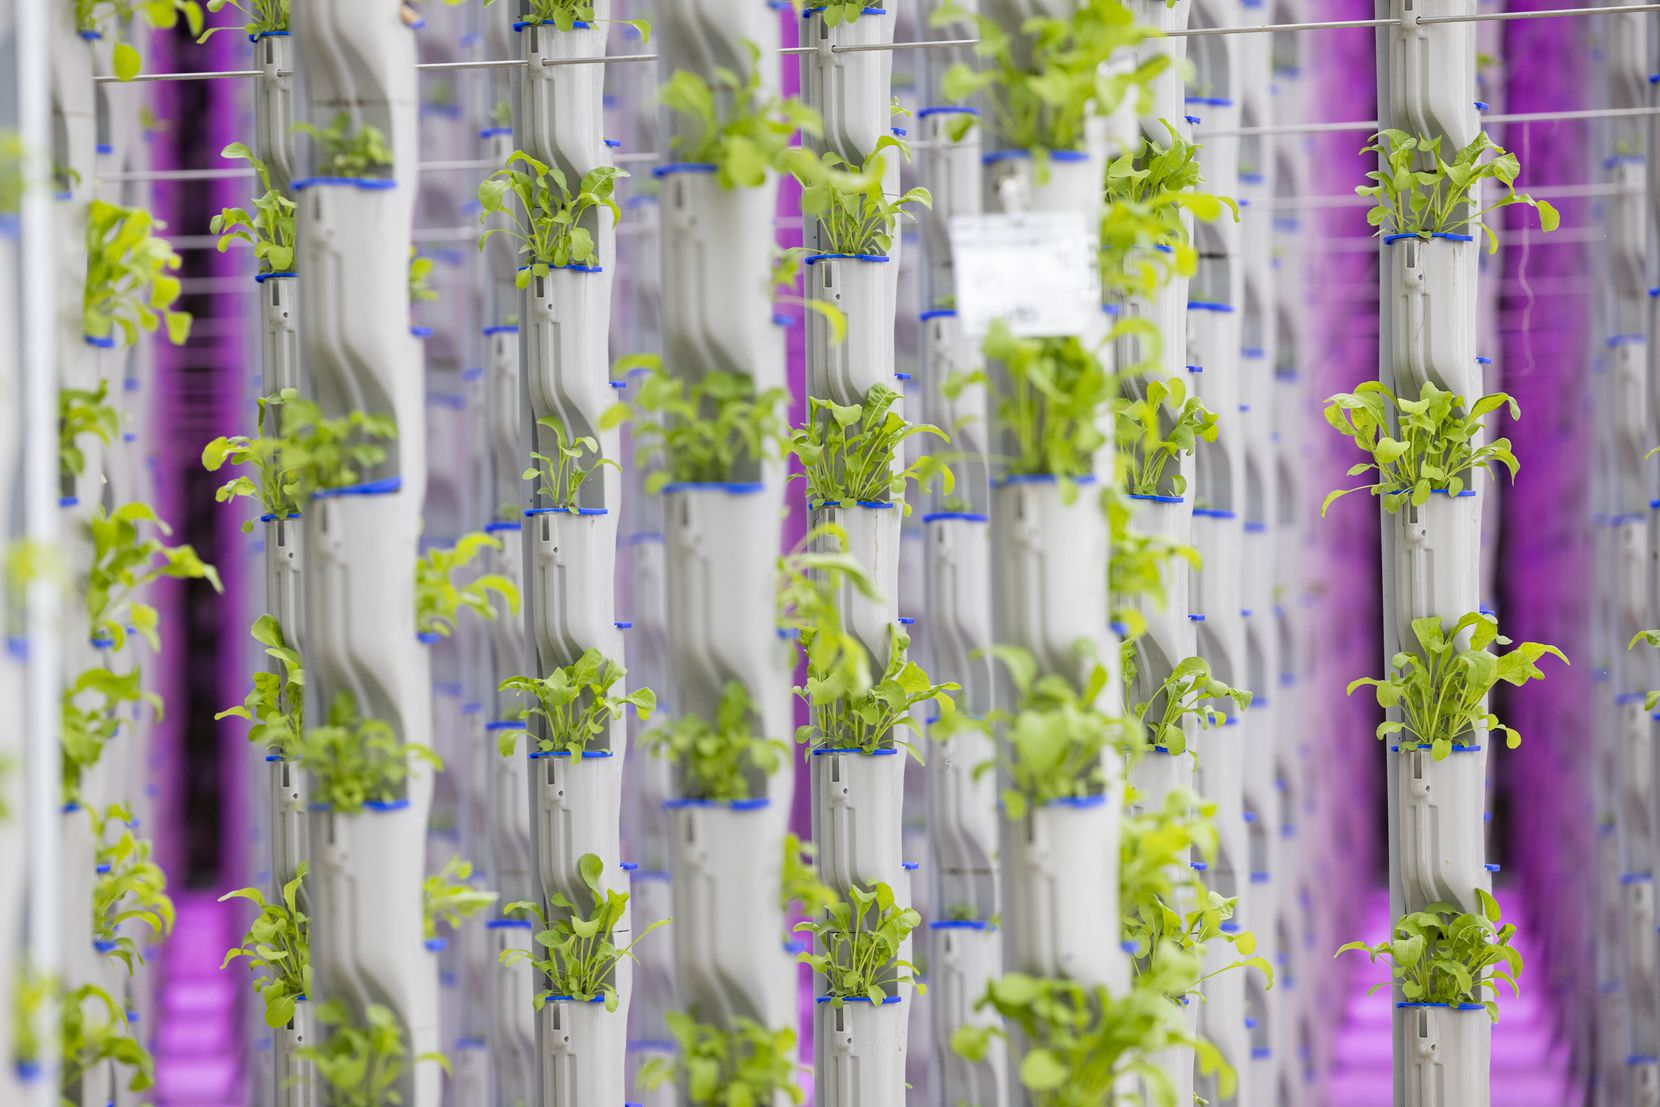 Eden Green's vertical farming is shown in its existing research and development greenhouse.